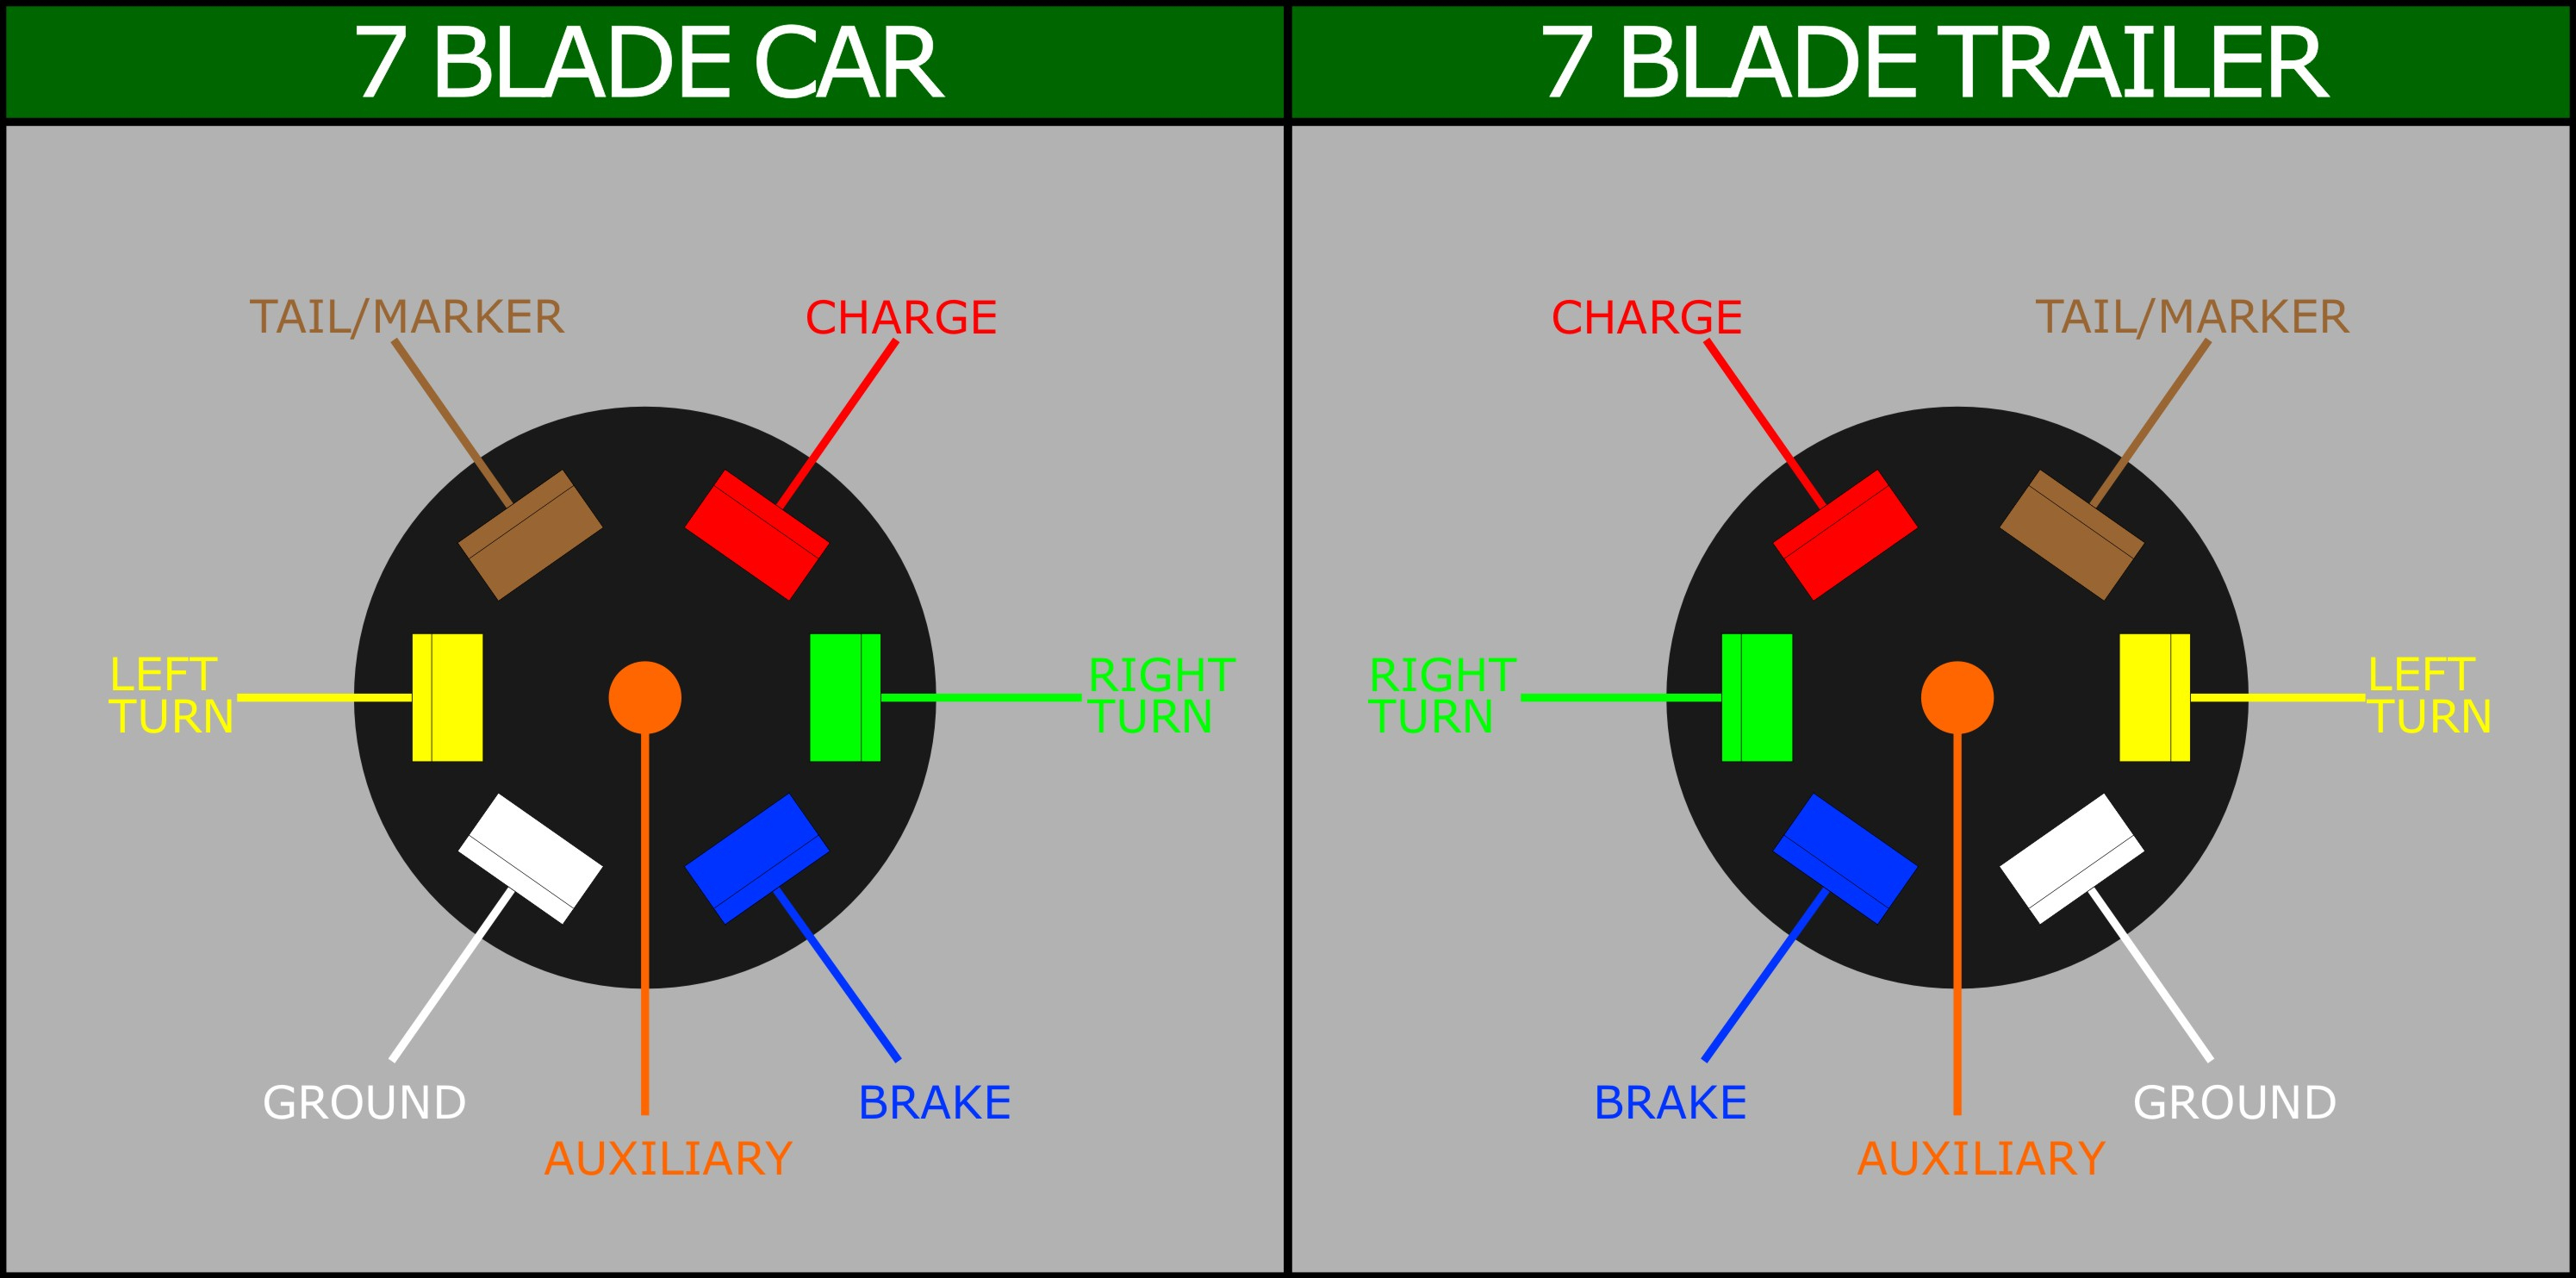 6 Pin Wire Harness Wiring Harness Diagram For Boat Trailer Wiring - Boat Trailer Wiring Diagram